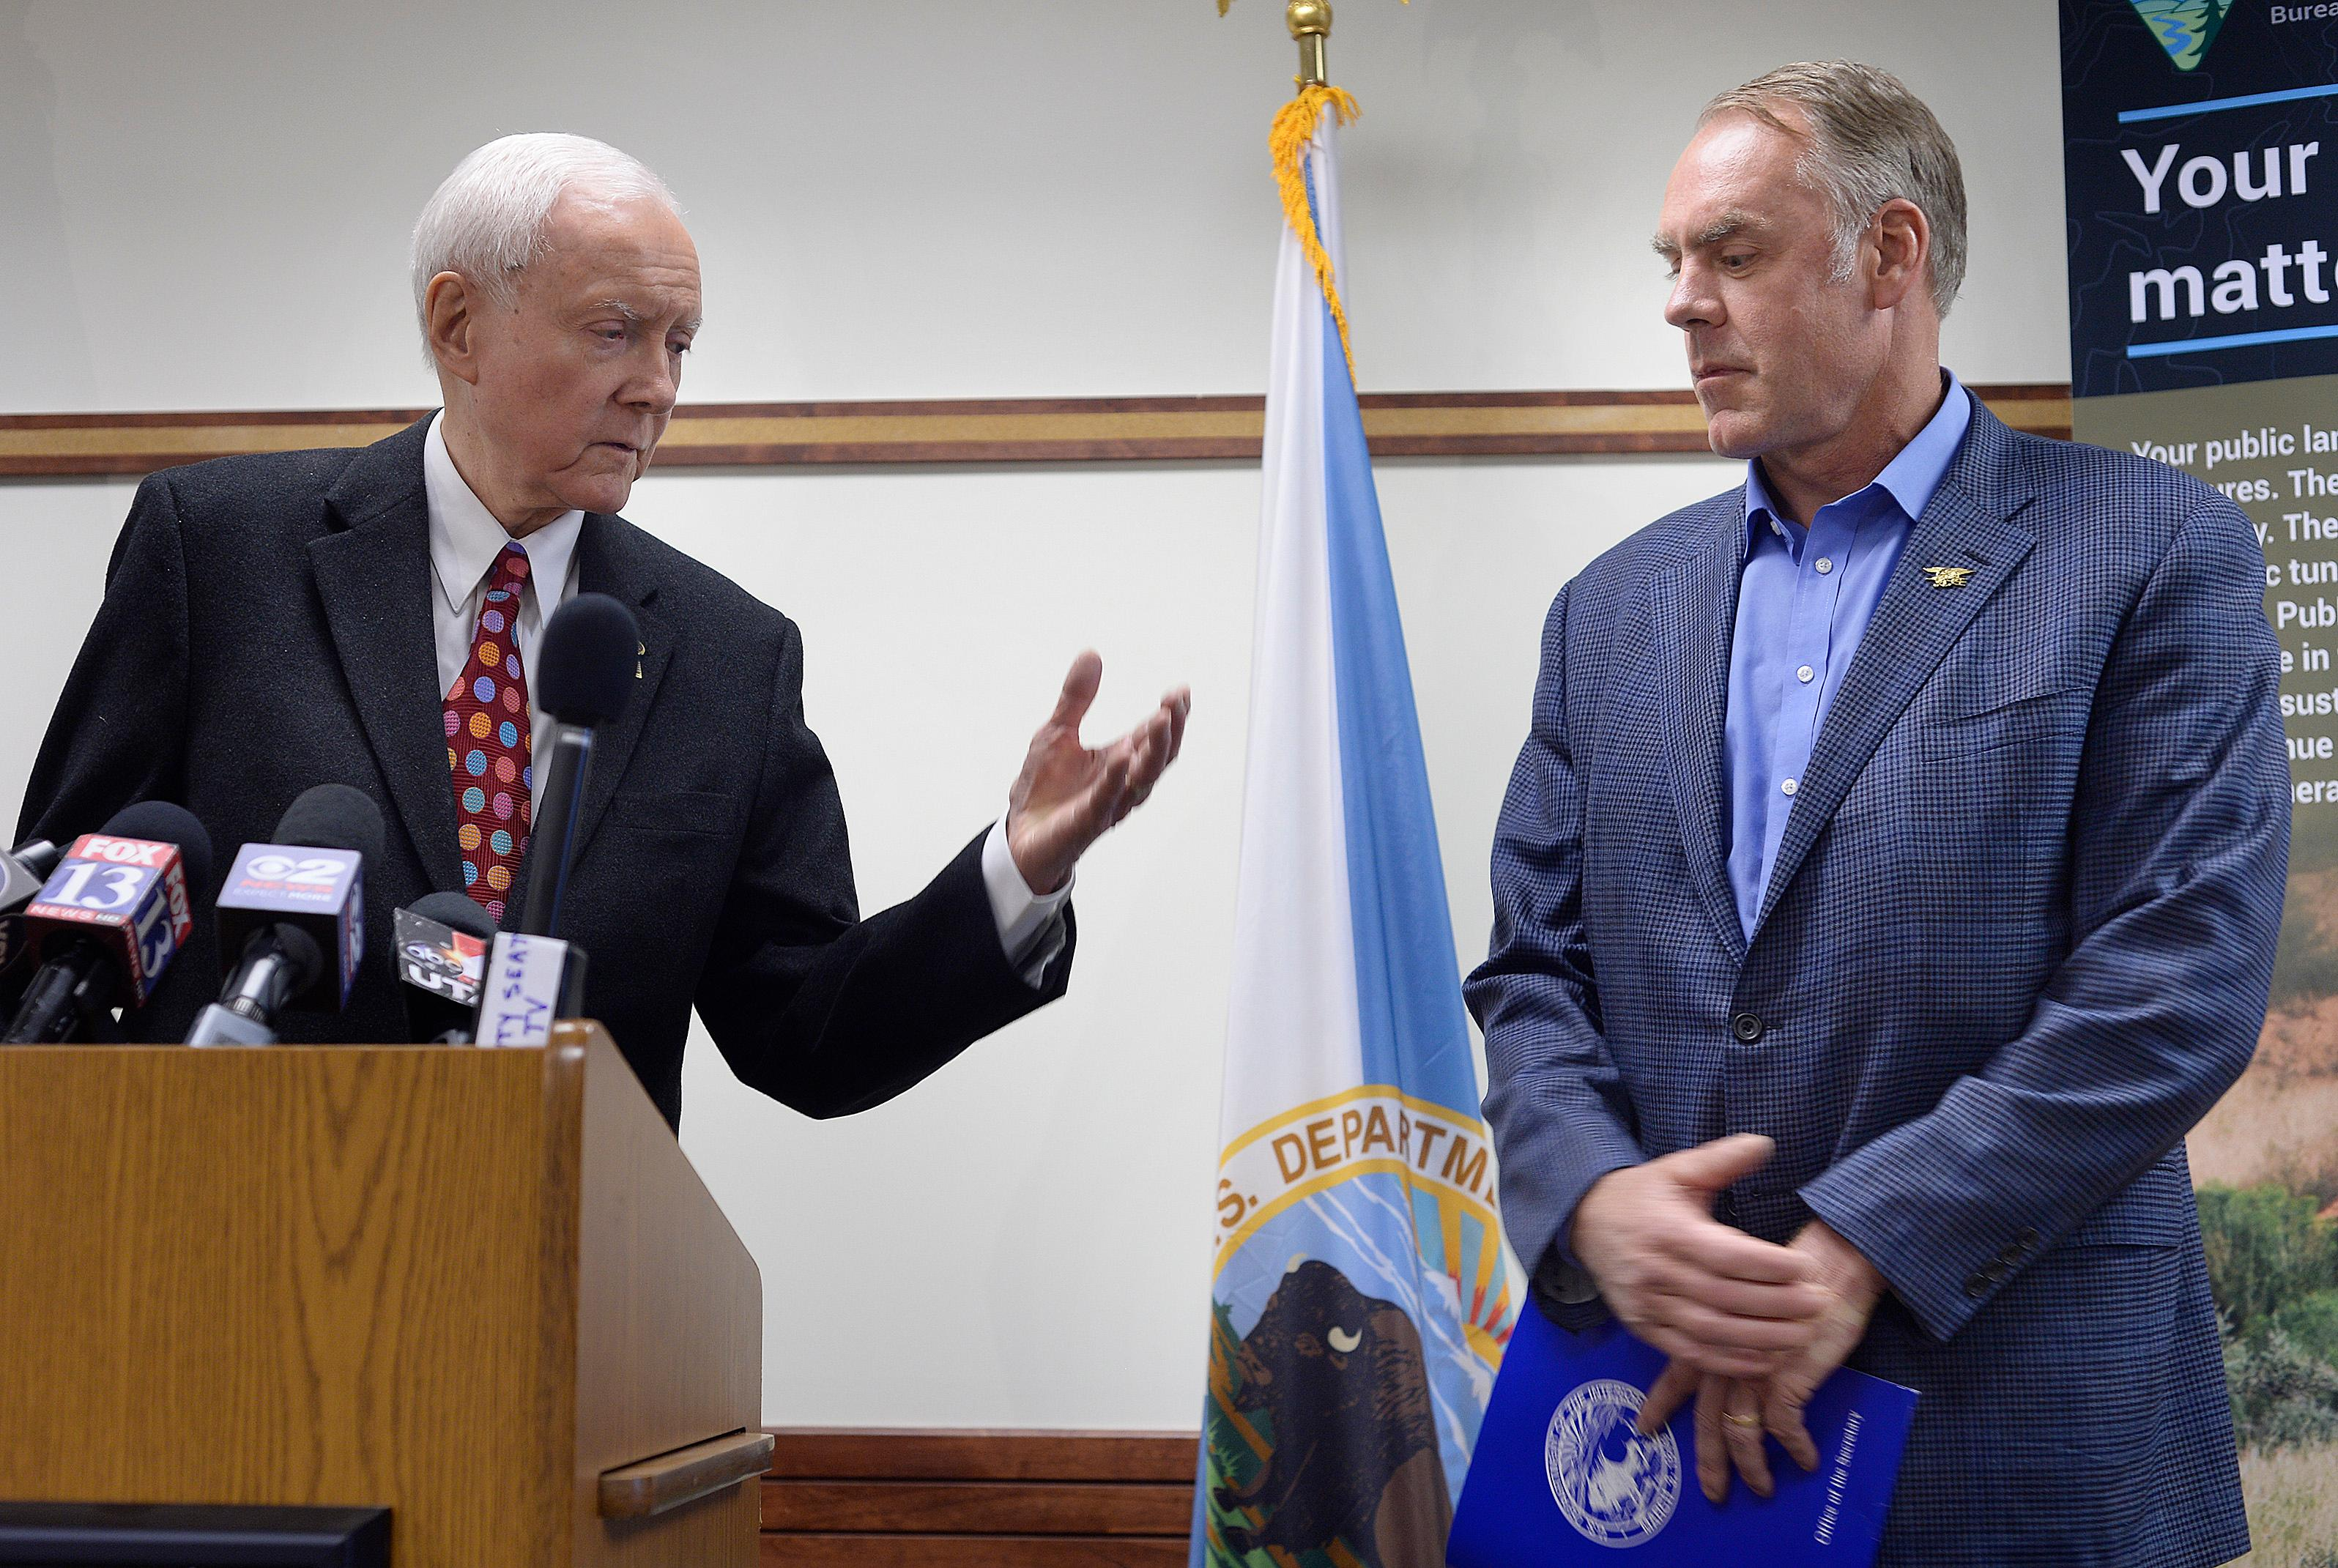 Senator Orrin Hatch, R-Utah, left, introduces U.S. Interior Secretary Ryan Zinke to speak at a news conference after having met with members of the Bears Ears Commission at the Bureau of Land Management office at the Gateway in Salt Lake City, Sunday, May 7, 2017. Zinke met with tribal leaders and elected officials as he kicked off a four-day trip to the state to inspect two disputed national monuments protecting more than 3 million combined acres of the state's red rock country. (Scott Sommerdorf/The Salt Lake Tribune via AP)